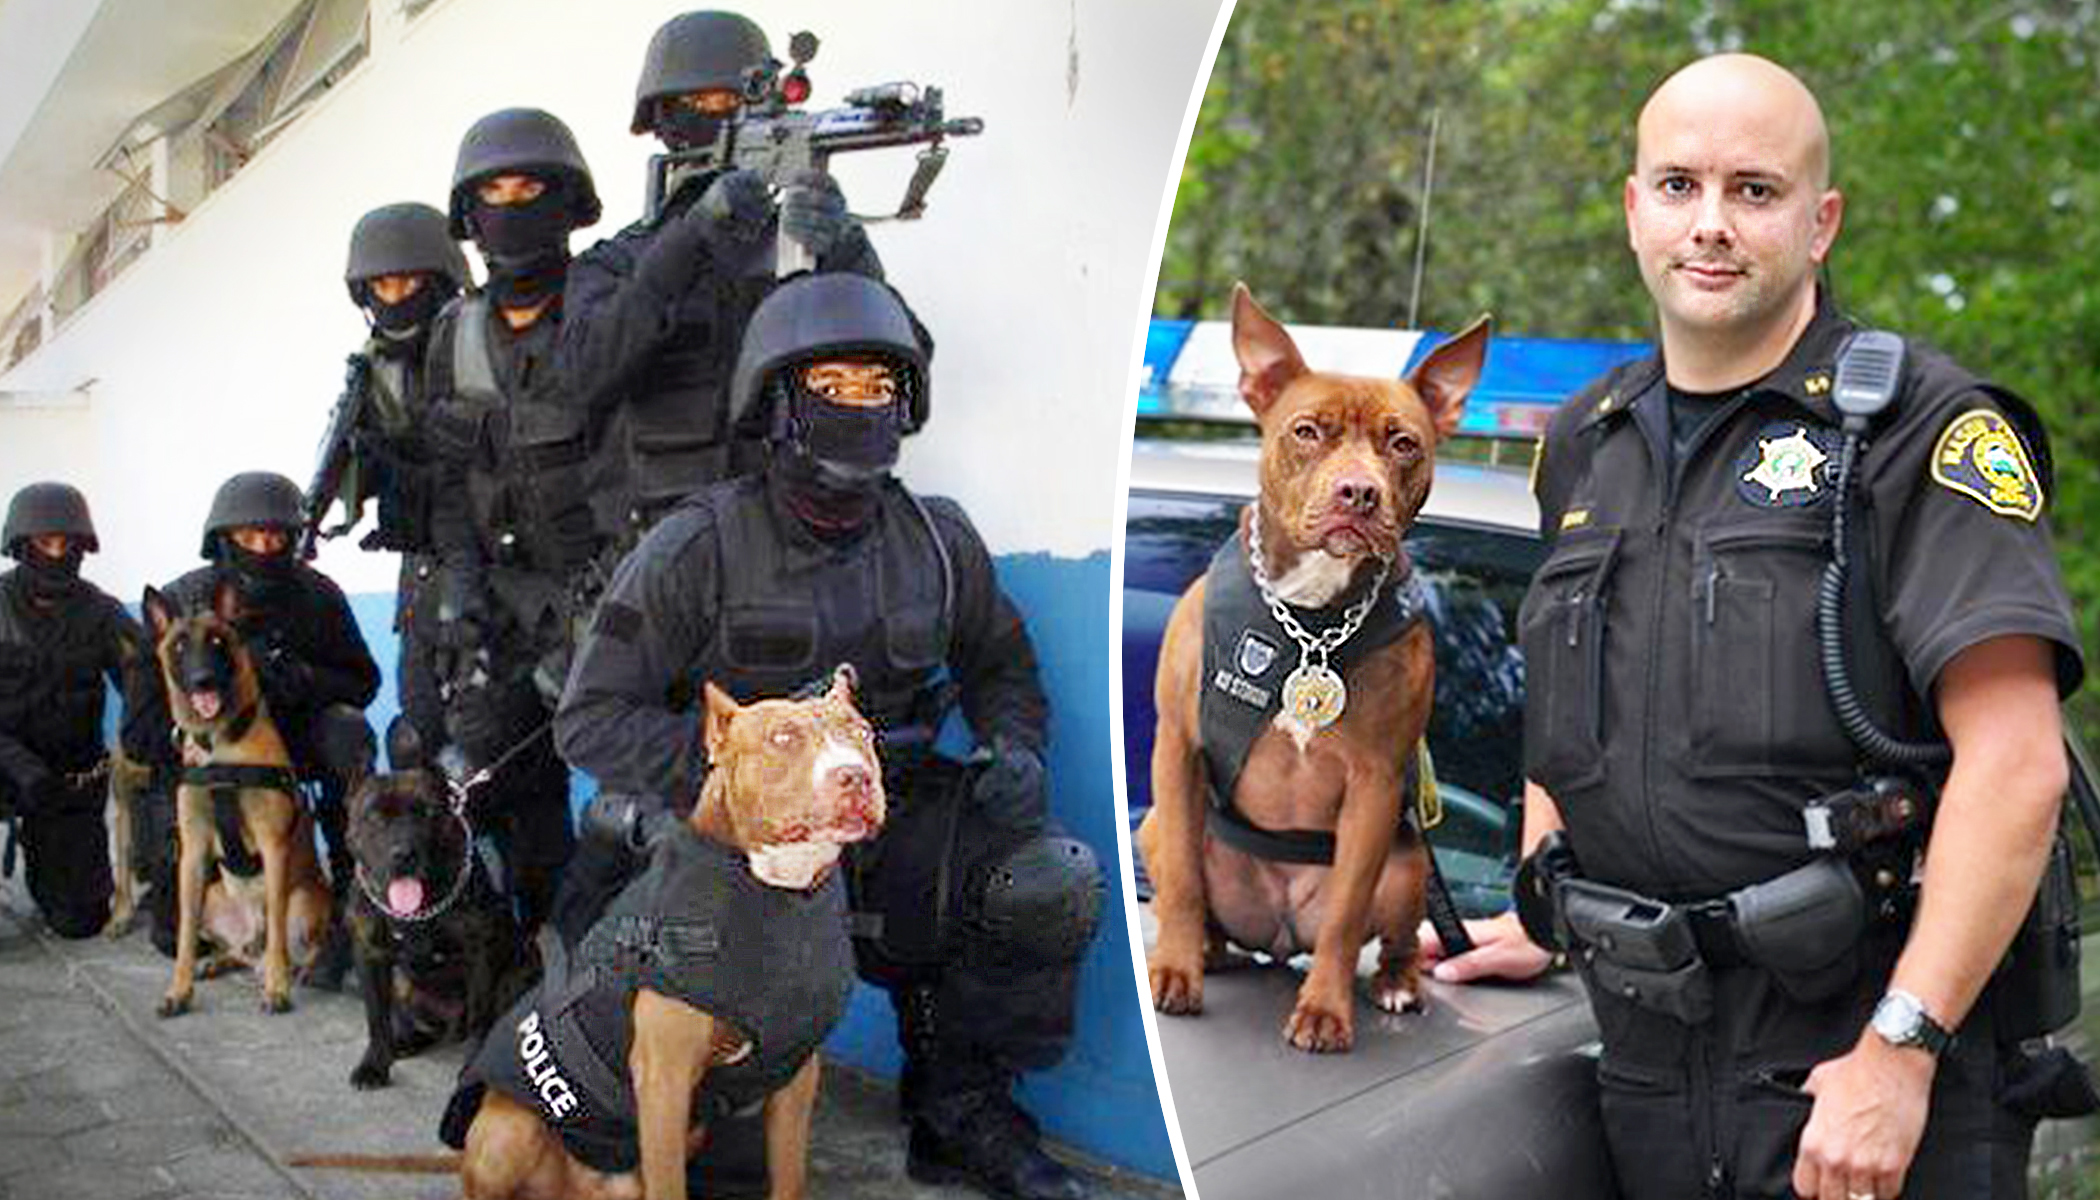 Police Departments Needed Cheaper K9s, so They Adopted Pit Bulls From Dog Shelters